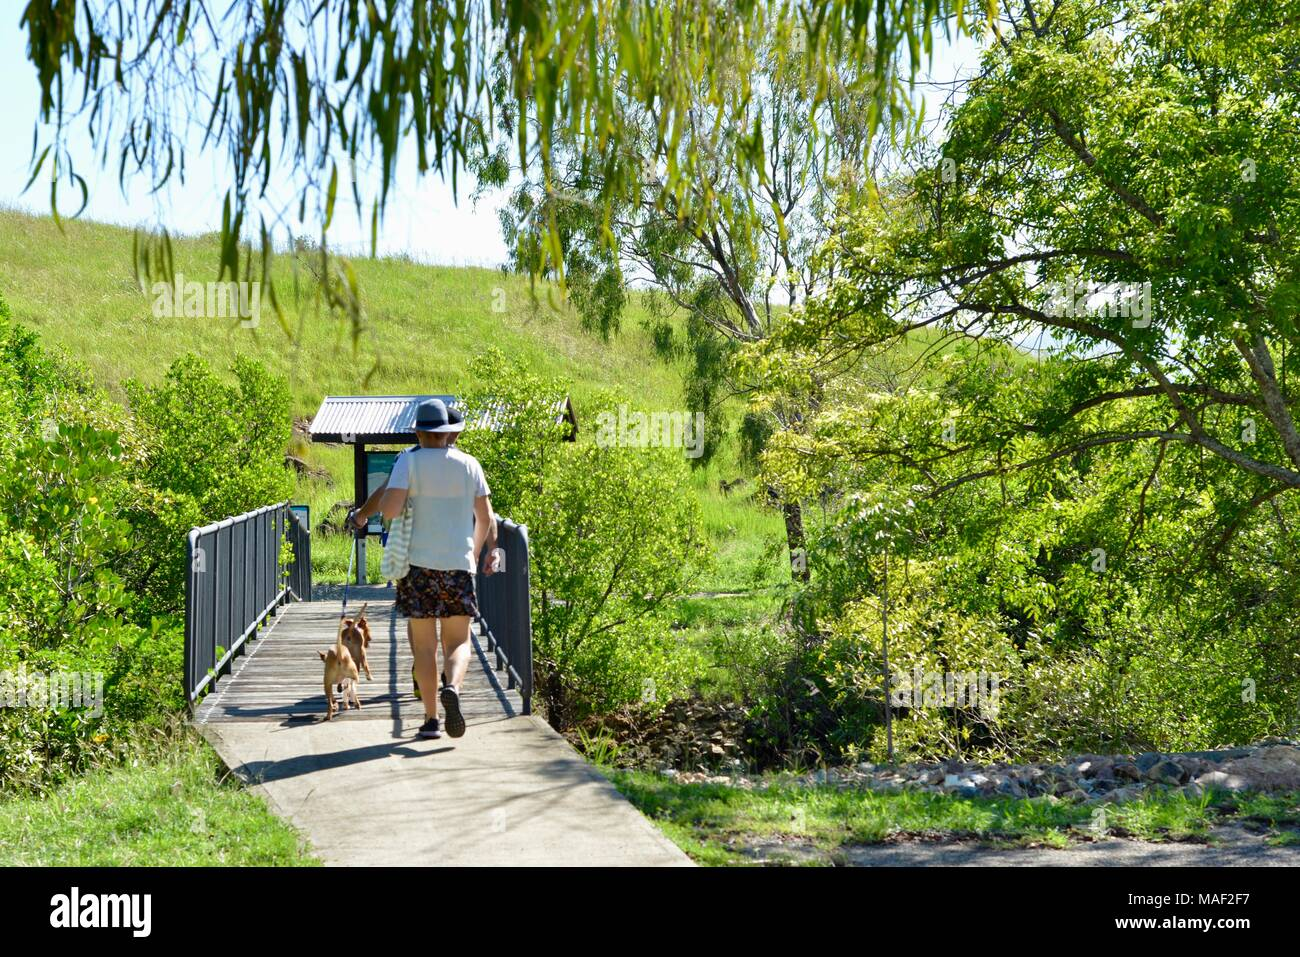 People walking their dogs into a no dog area, Shelly Cove trail at Cape Pallarenda Conservation Park Queensland Australia - Stock Image